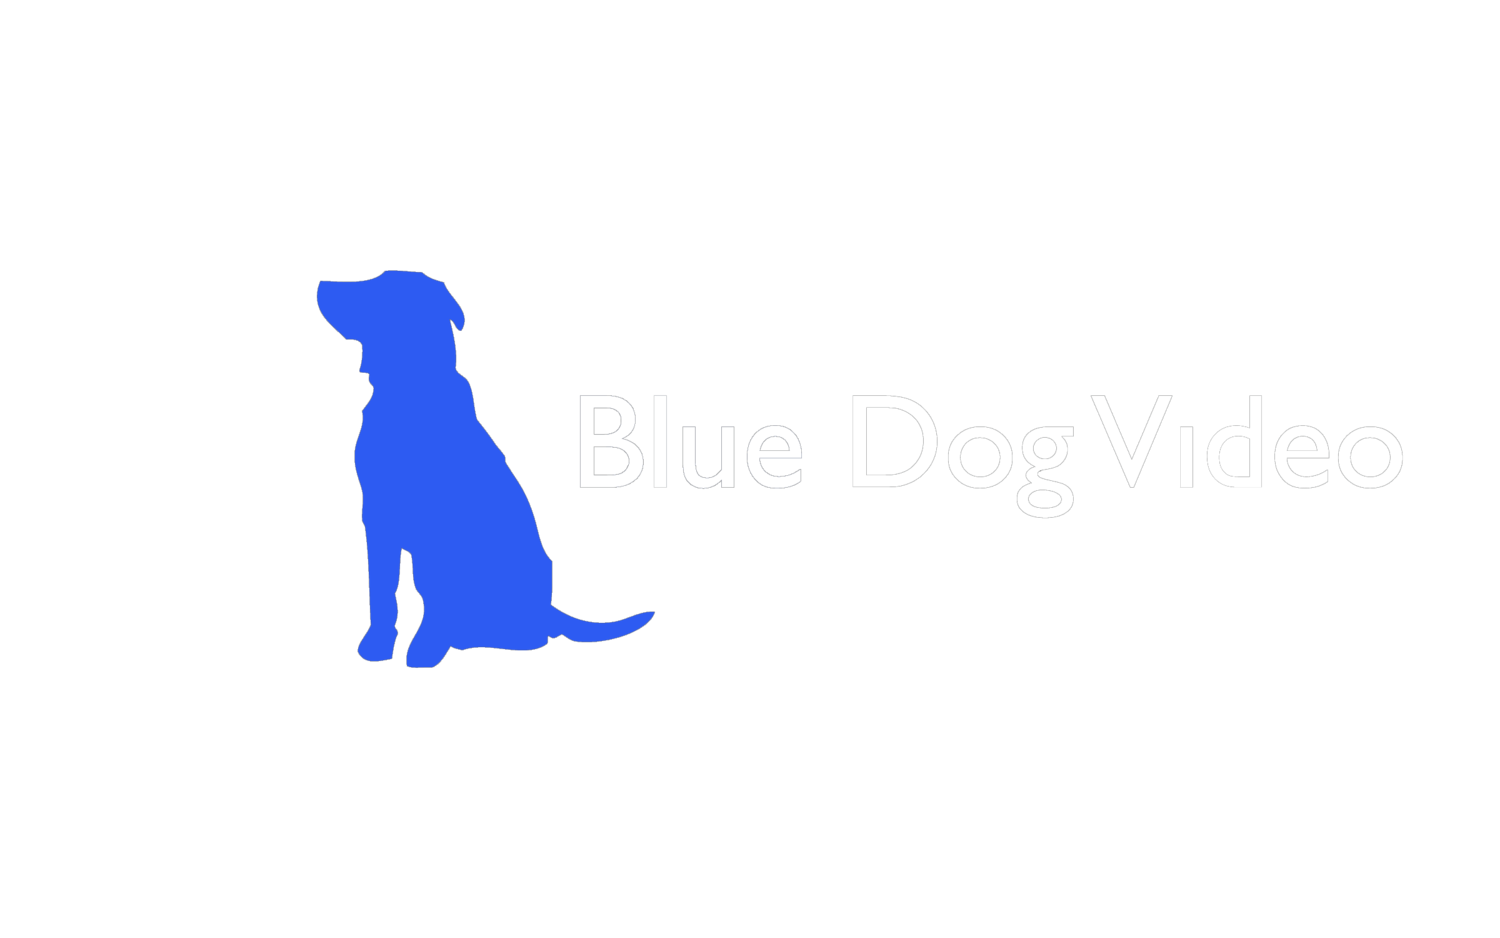 Blue Dog Video